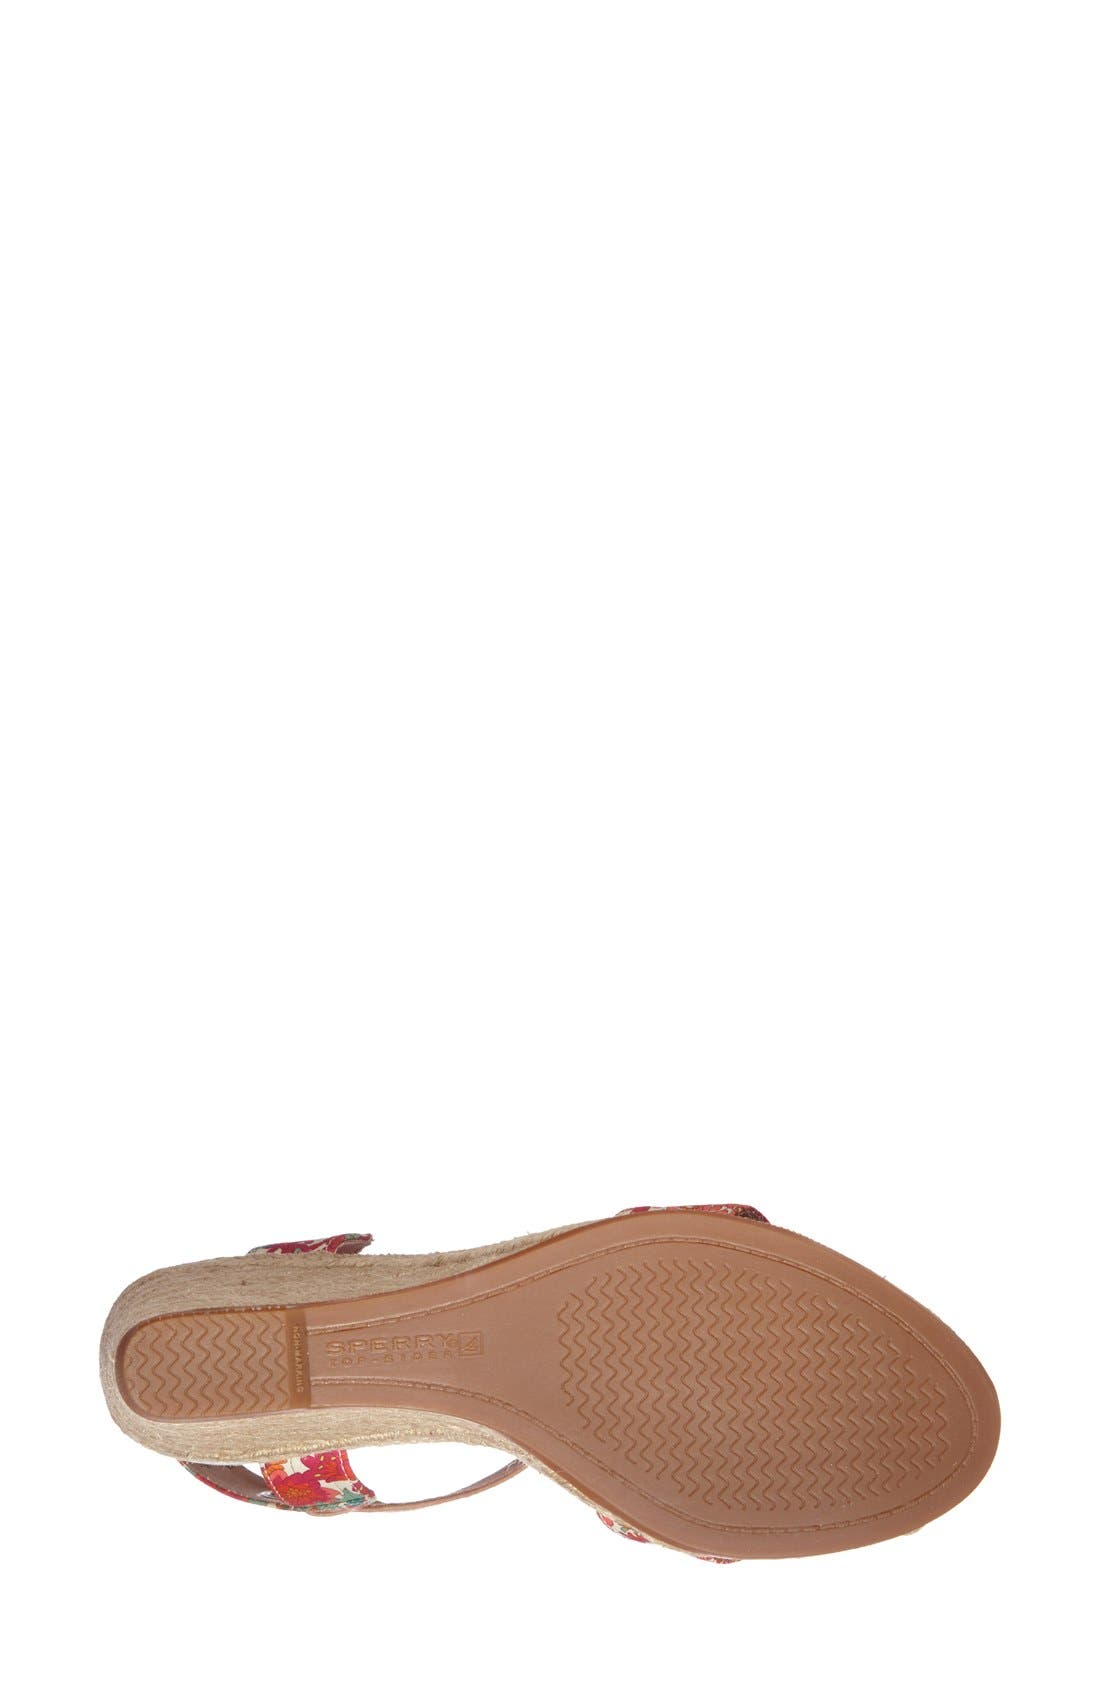 Alternate Image 4  - Sperry 'Saylor' Espadrille Wedge Sandal (Women)